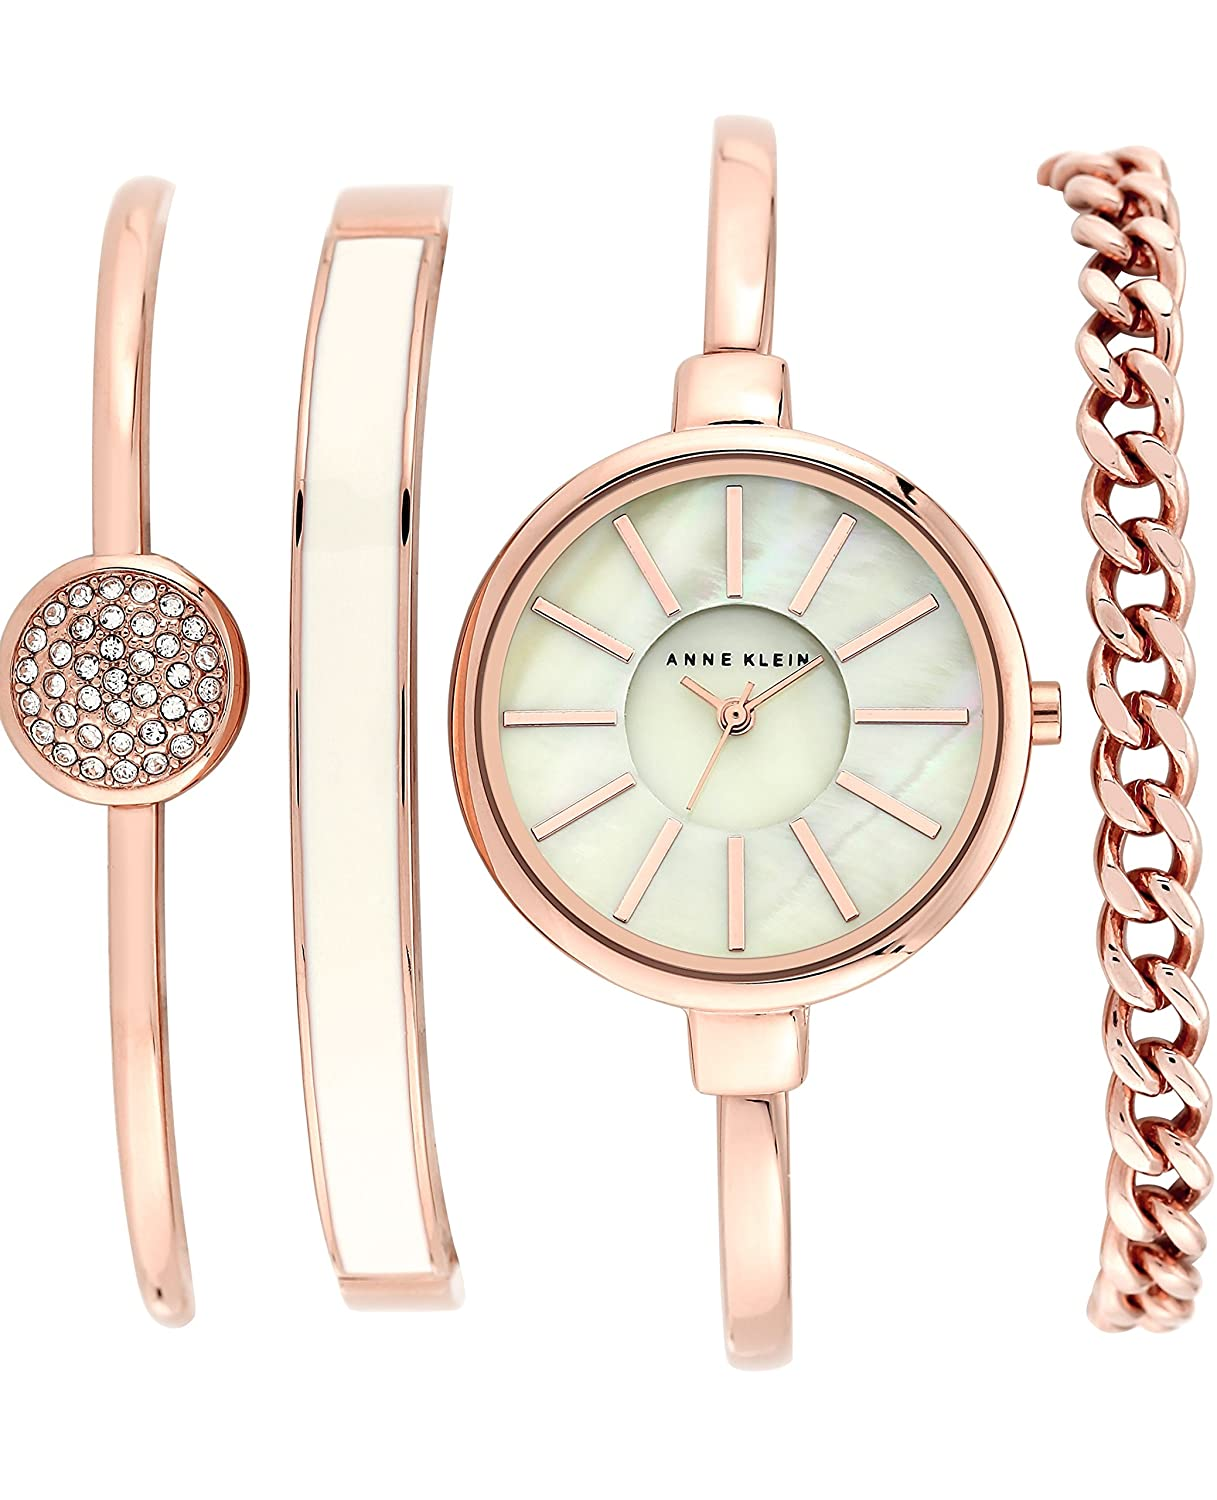 anne klein women 39 s ak 1470 bangle watch and bracelet set ebay